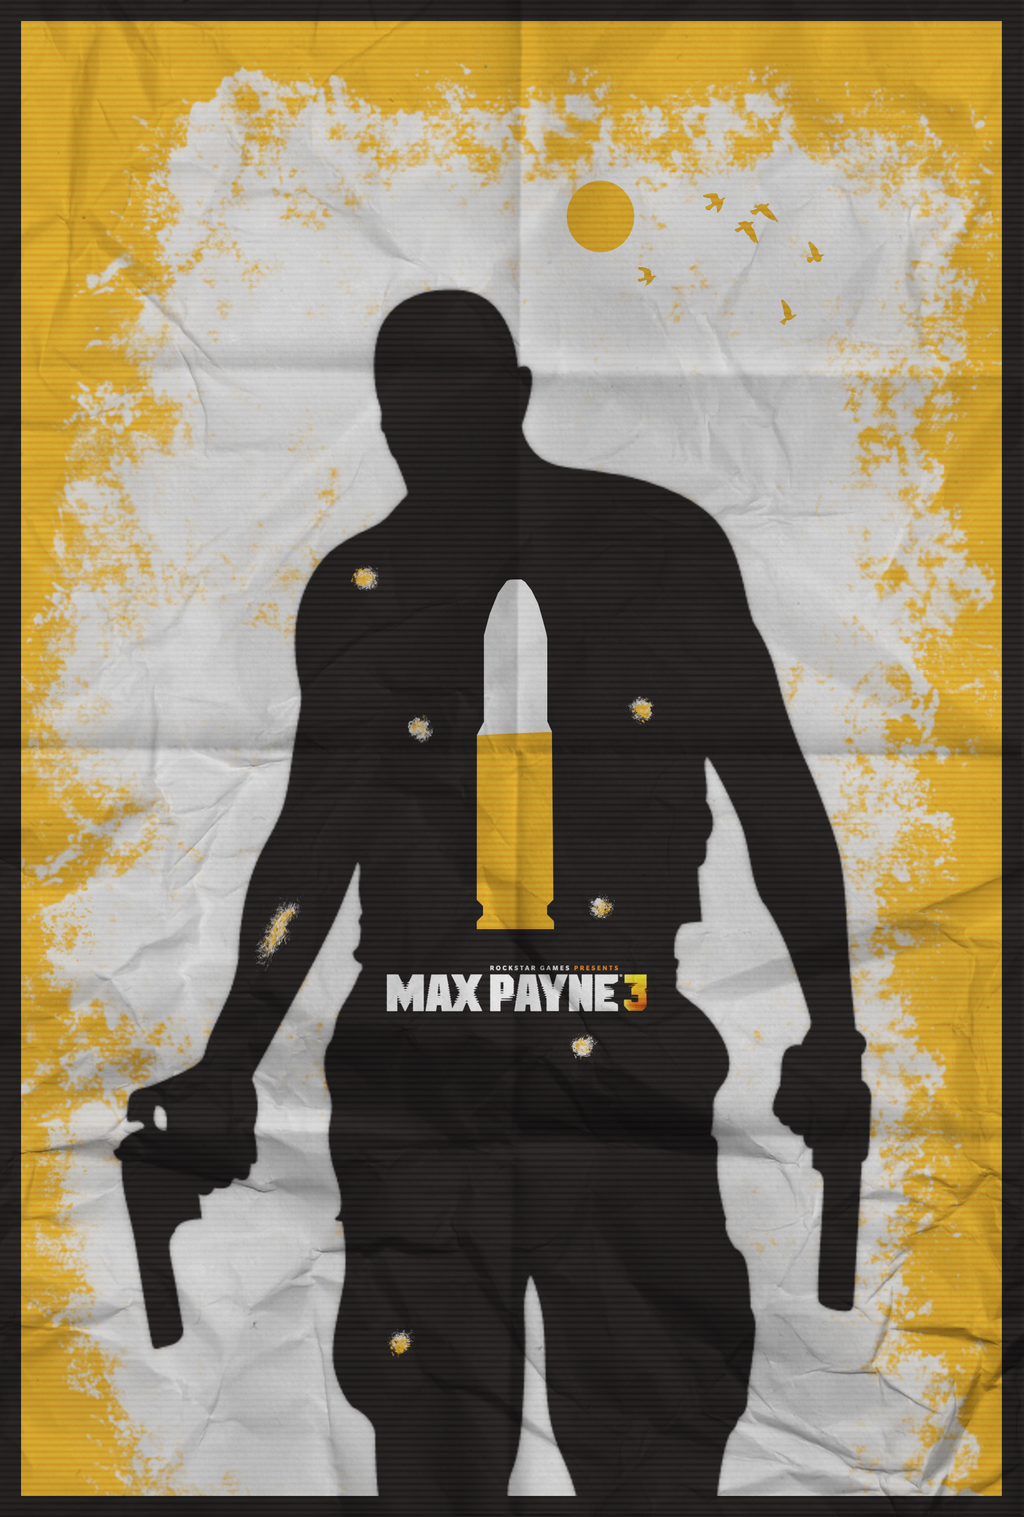 Max Payne 3 - I Don't Feel Pain, I Deal It by shrimpy99